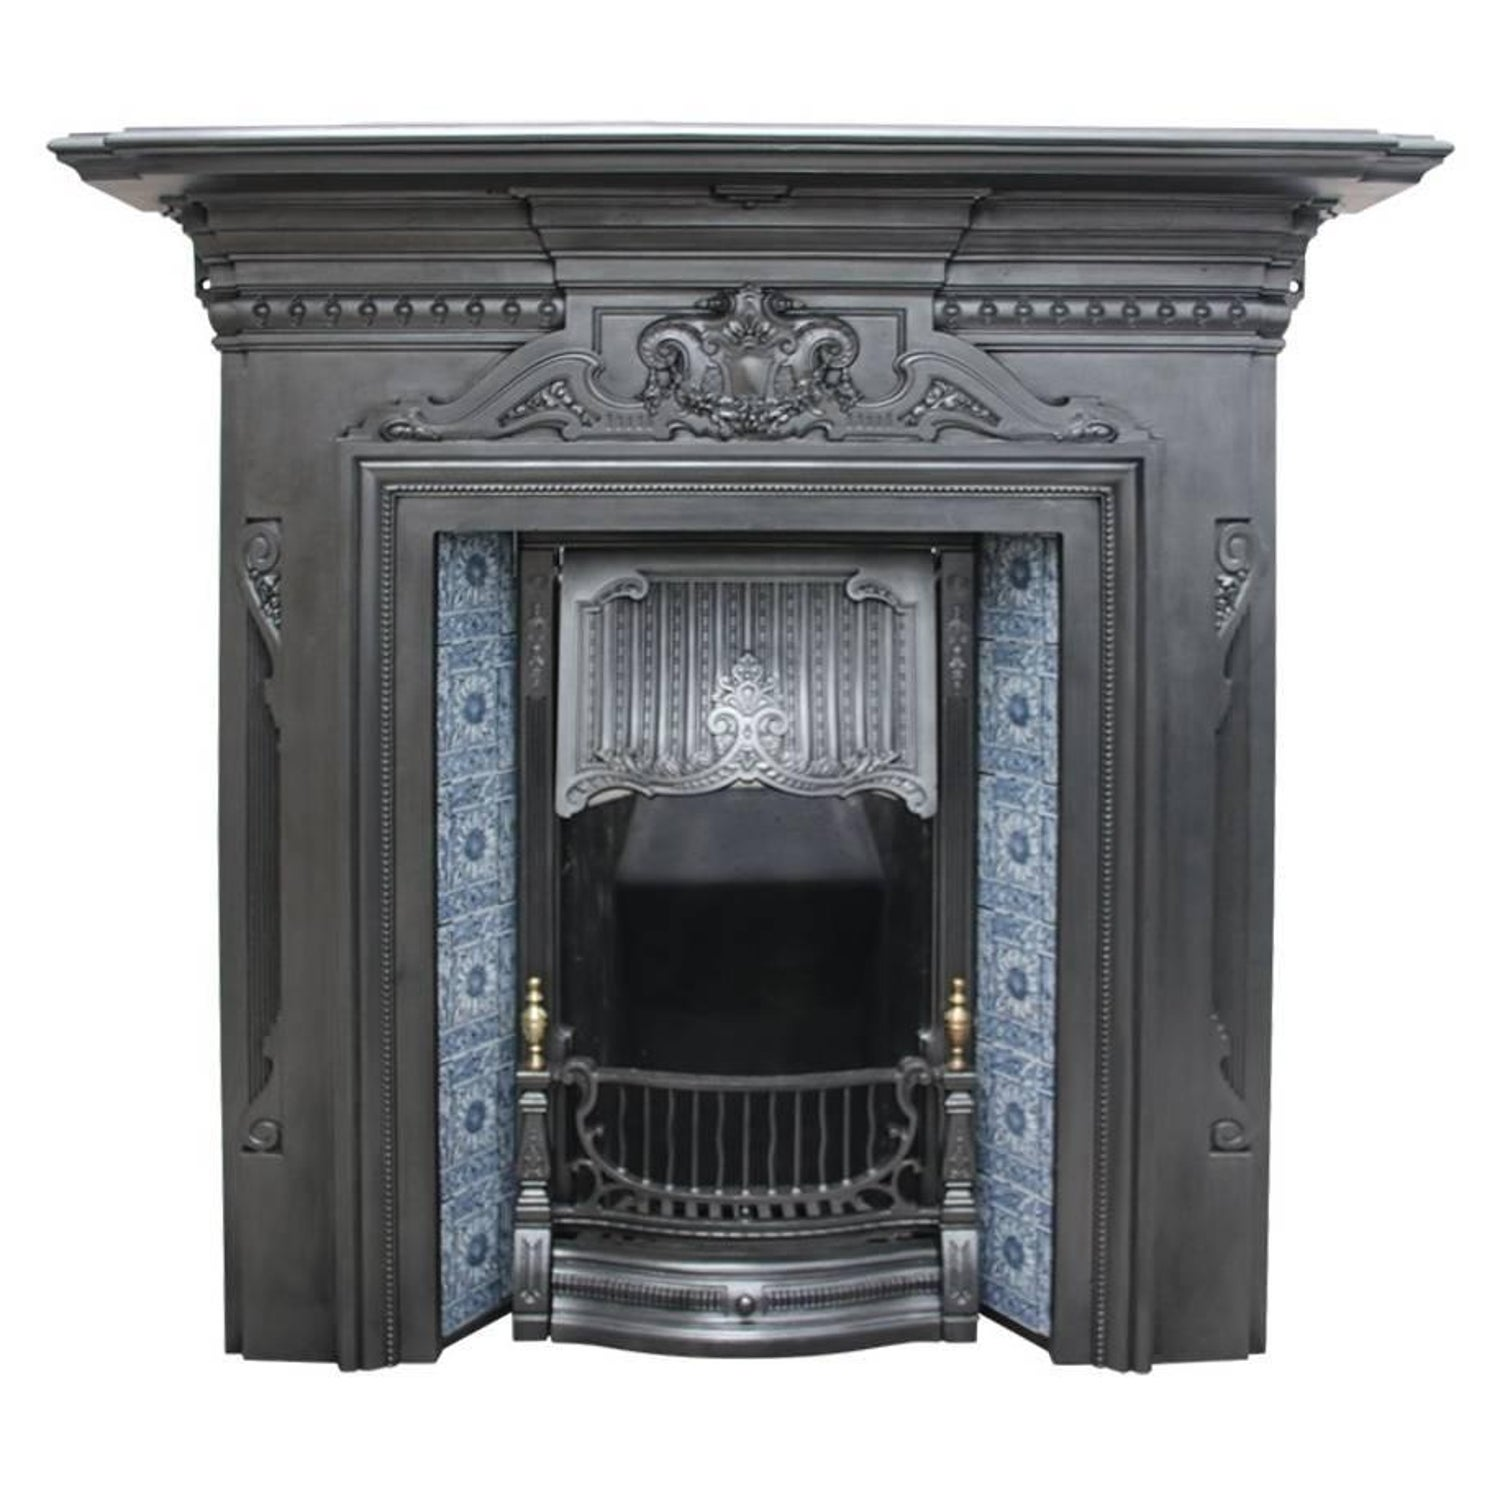 cast anson insert grate fireplace arched iron